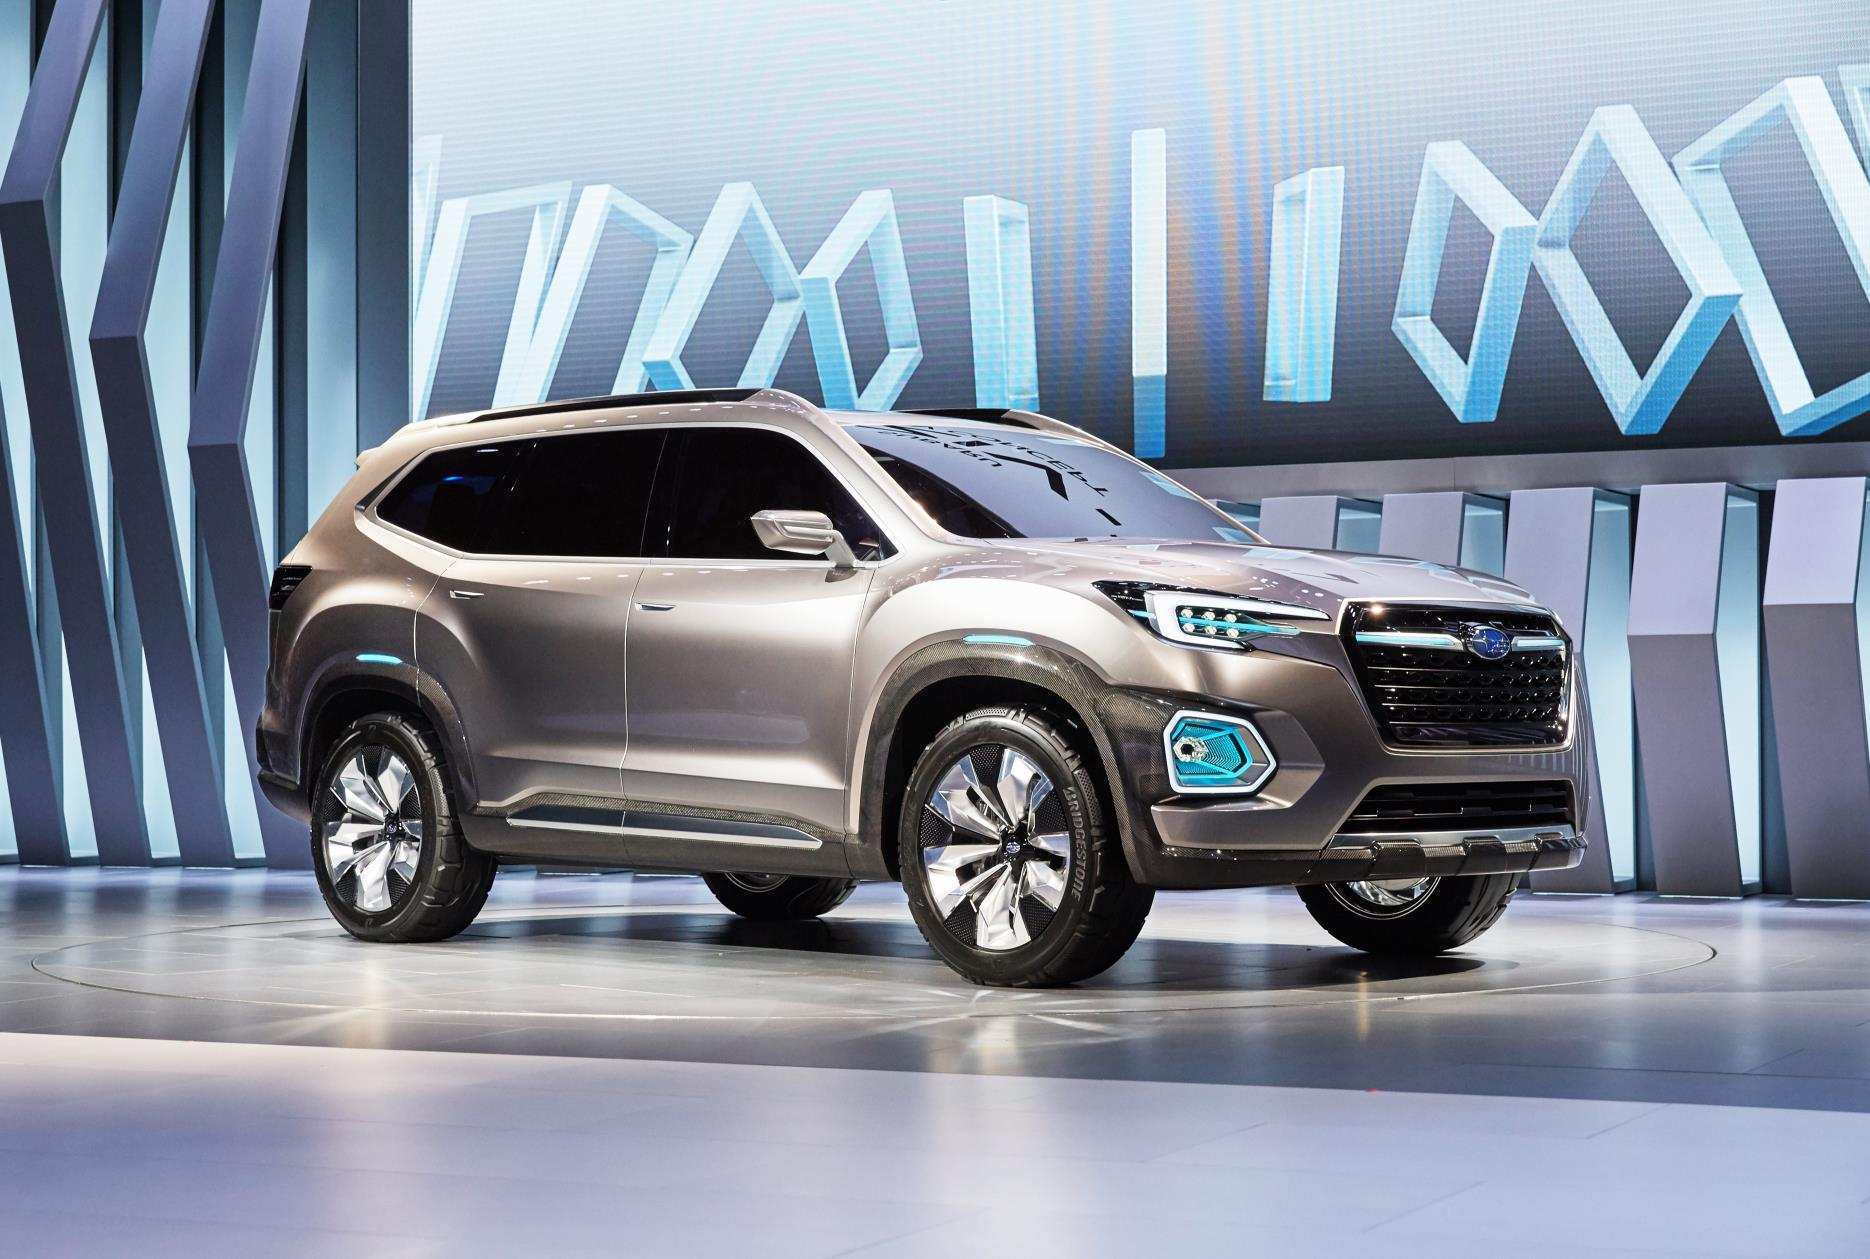 98 Gallery of 2019 Subaru 7 Seater Images by 2019 Subaru 7 Seater